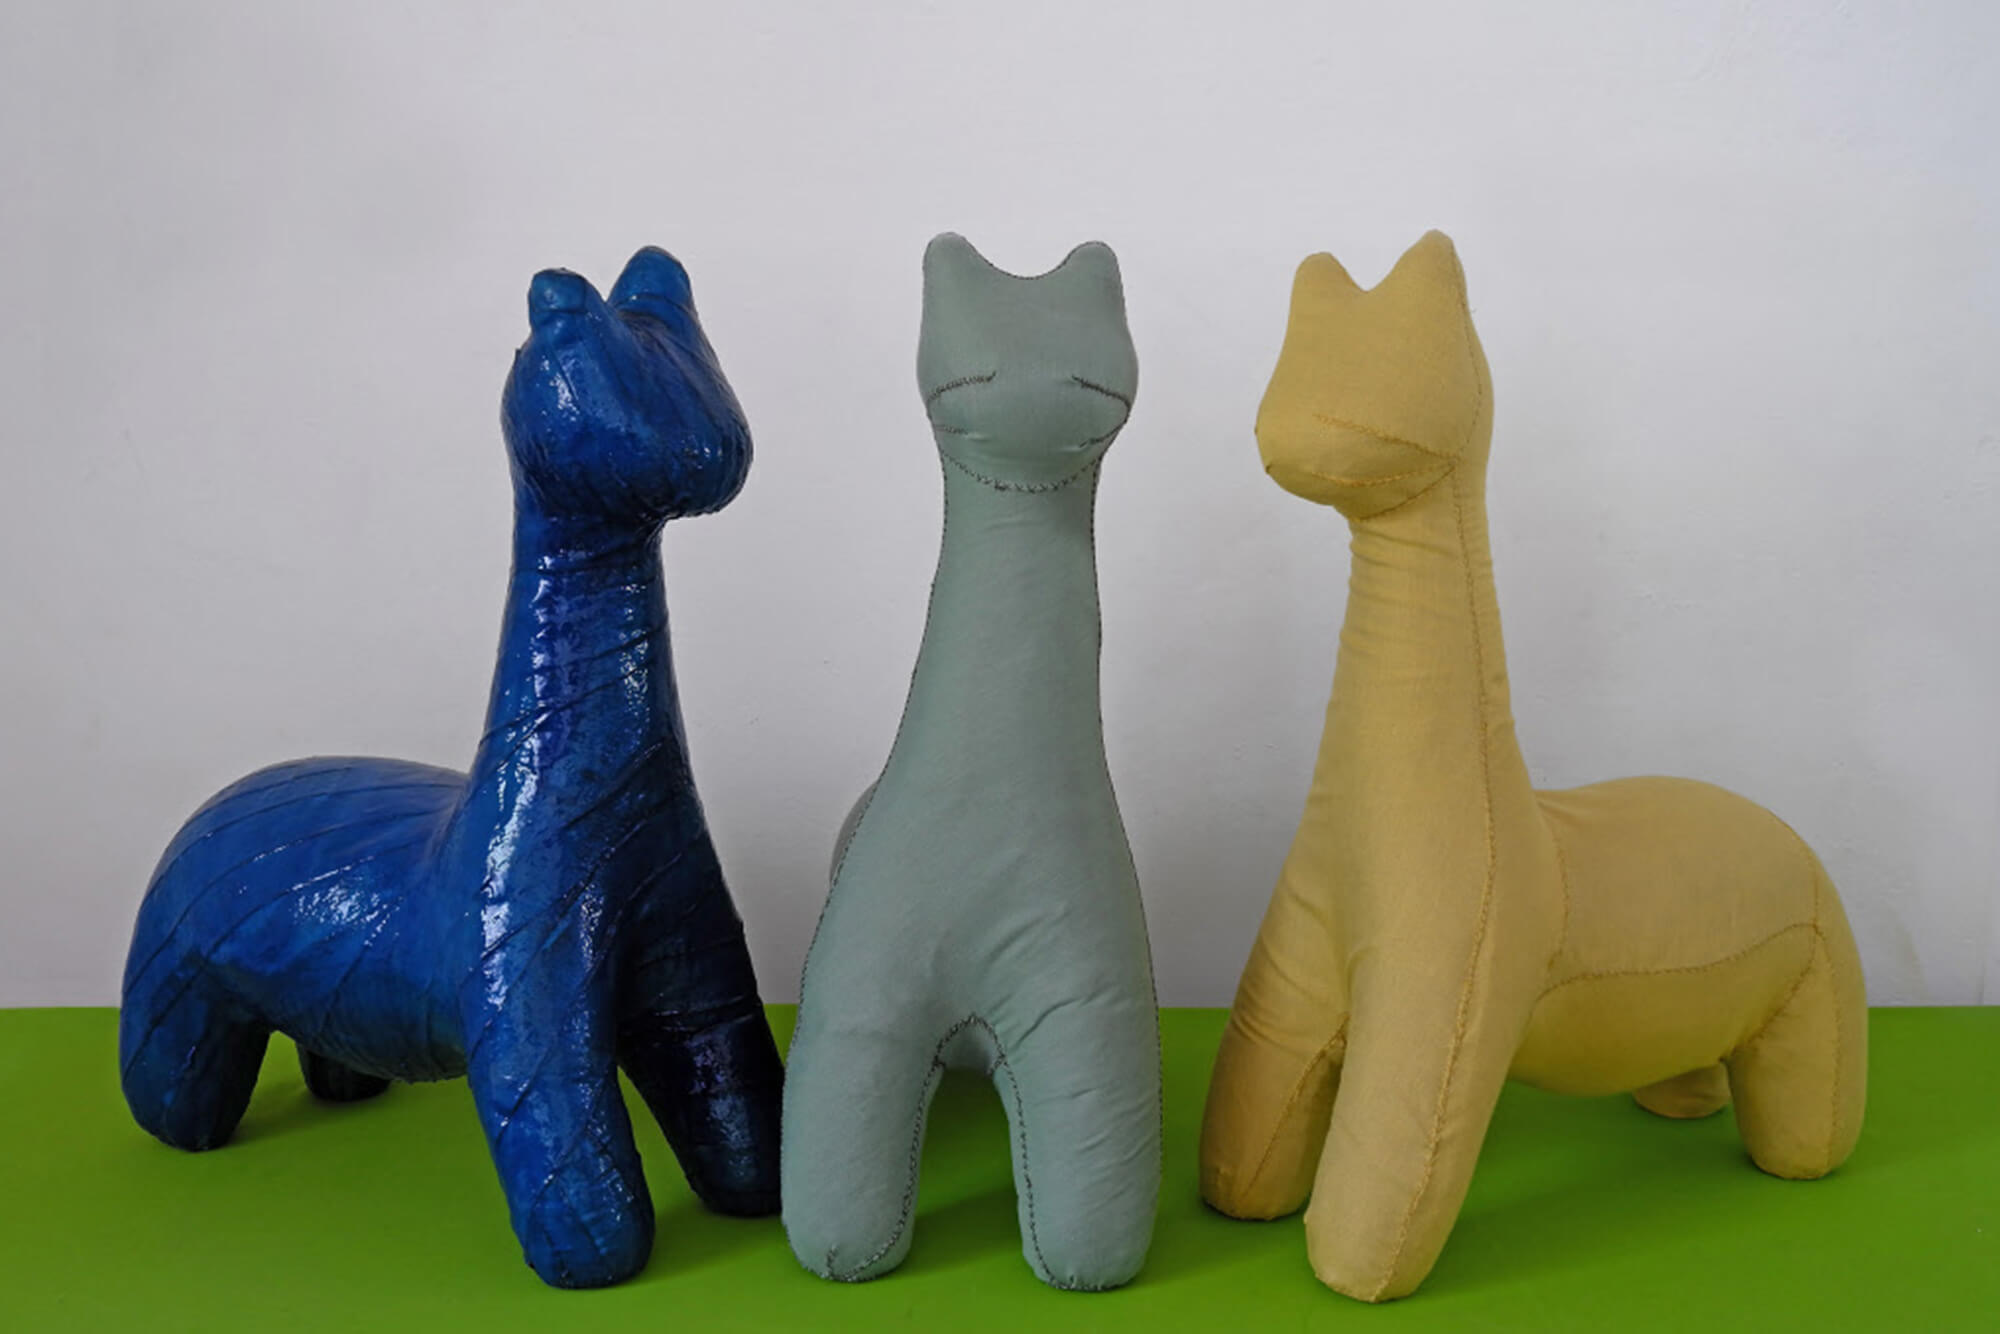 Pouffs shaped as animals made using Sunbrella fabrics